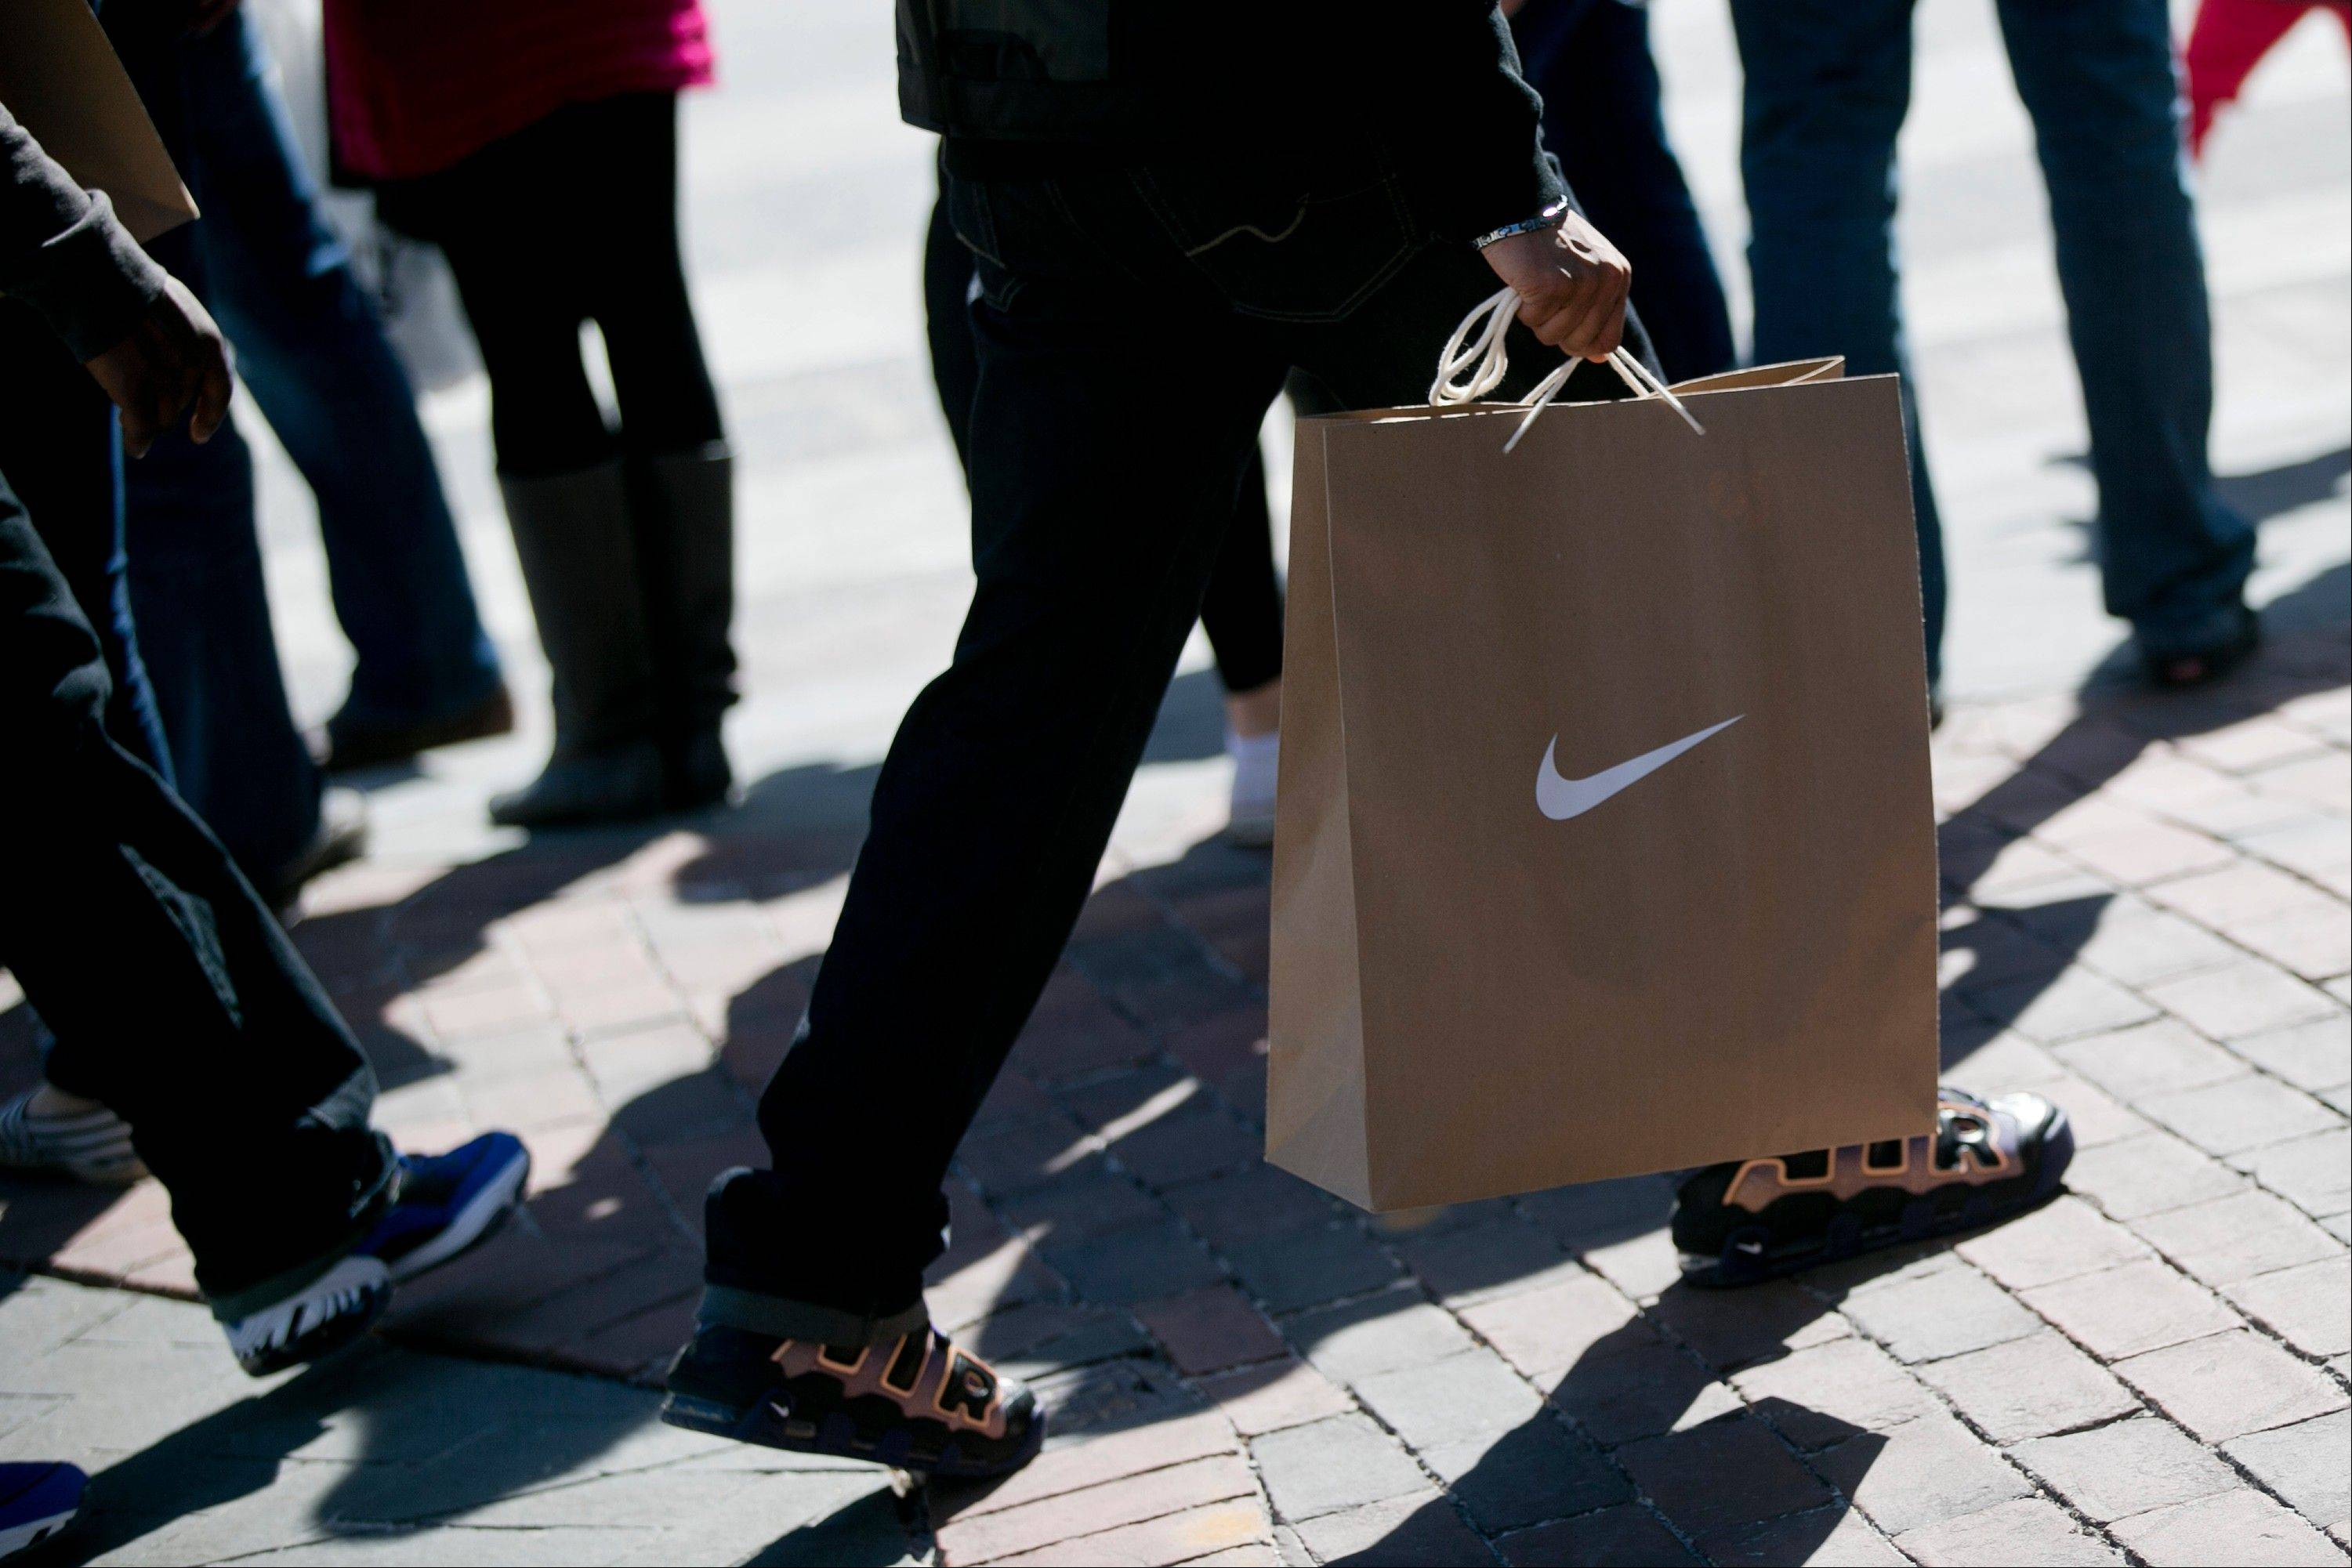 Bloomberg News/March 9 A man carries a Nike Inc. shopping bag in the Georgetown neighborhood of Washington, D.C.